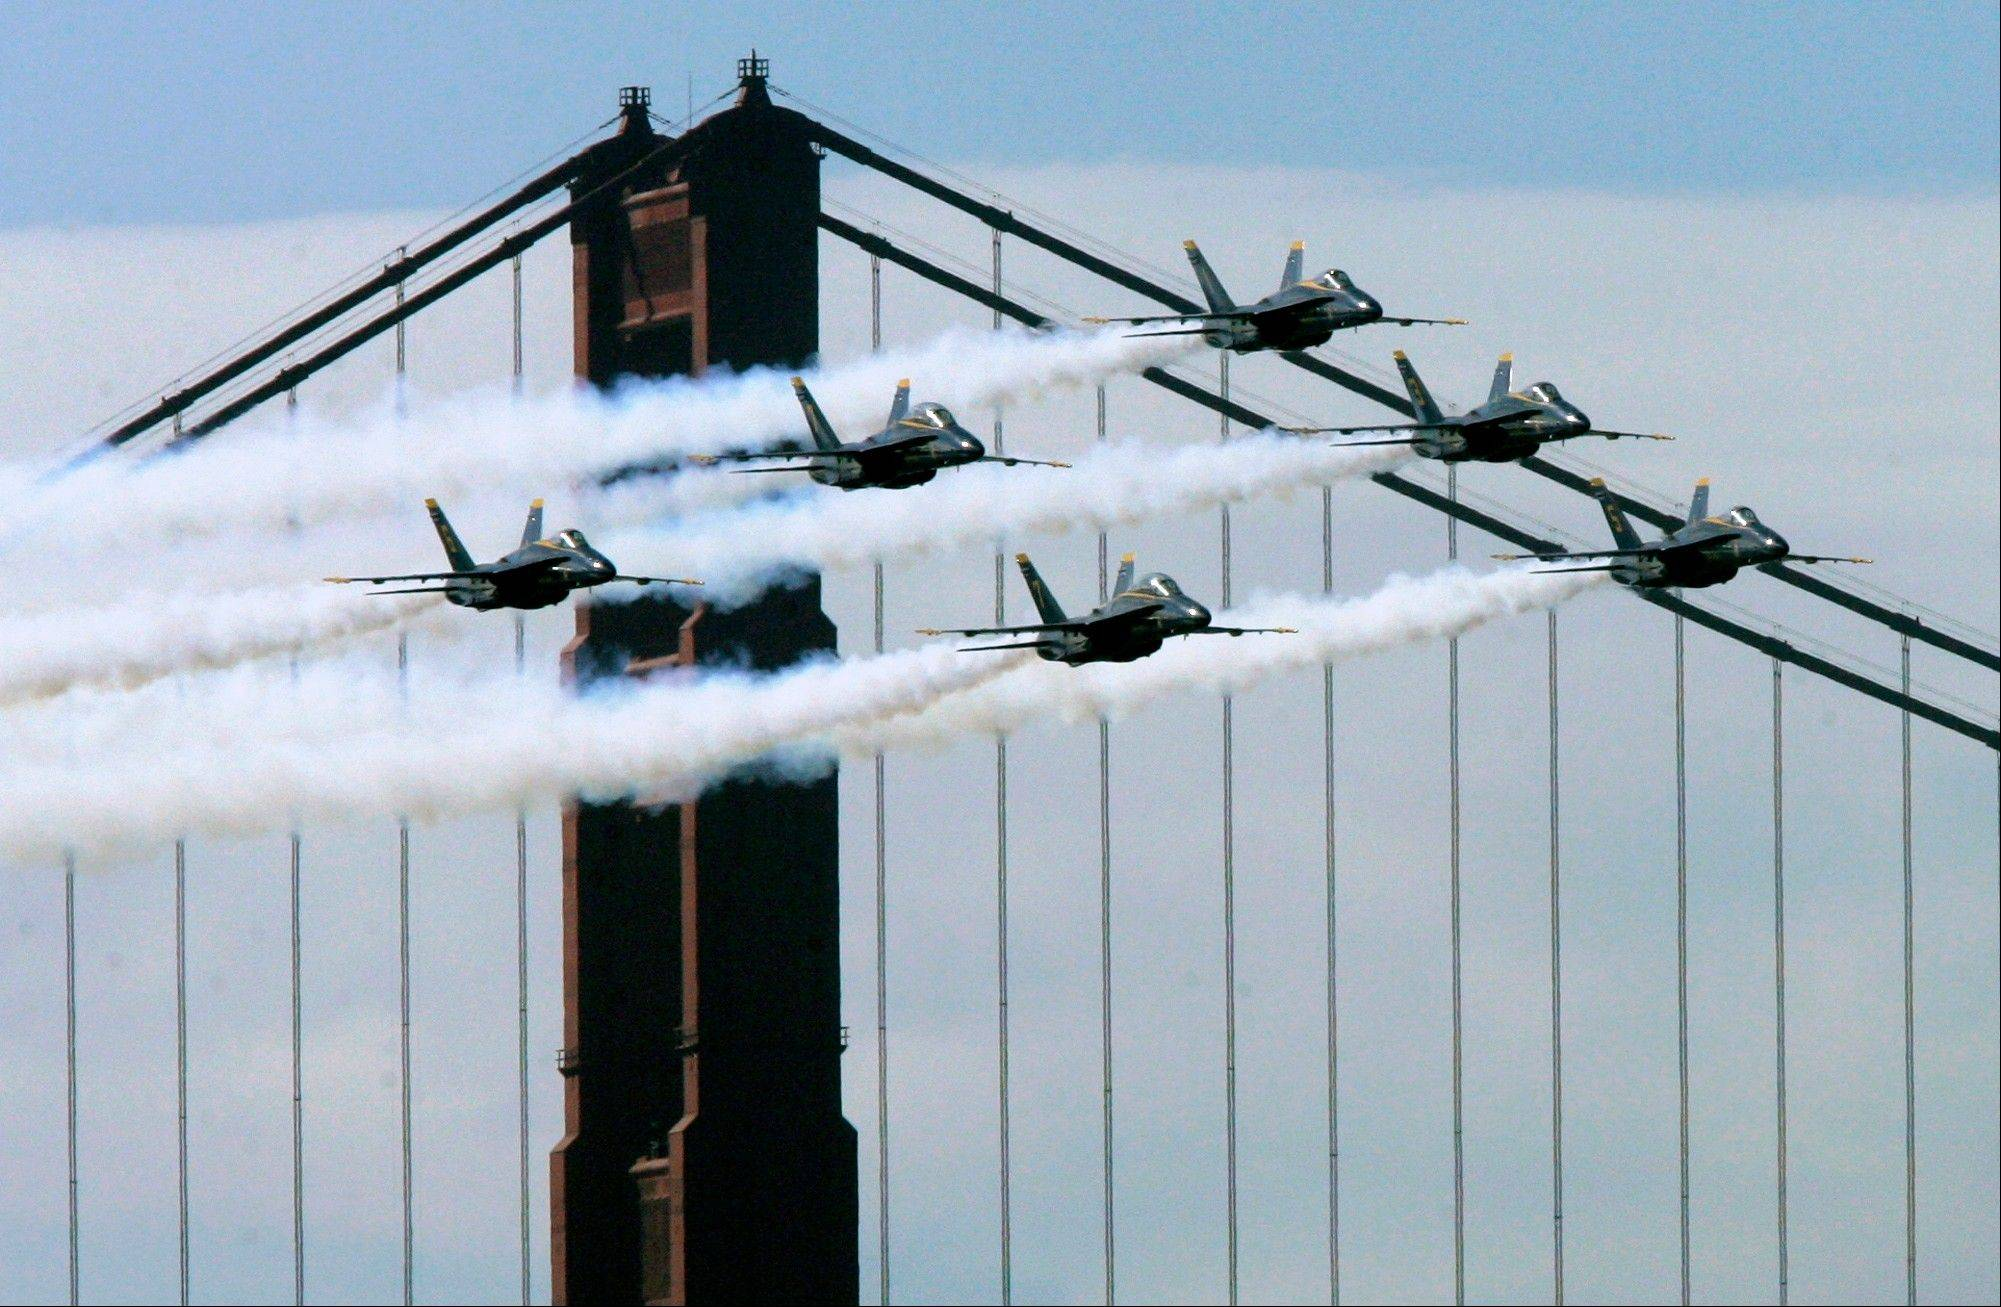 The U.S. Navy's Blue Angels announced Tuesday the rest of its 2013 season is canceled because of federal budget cuts.